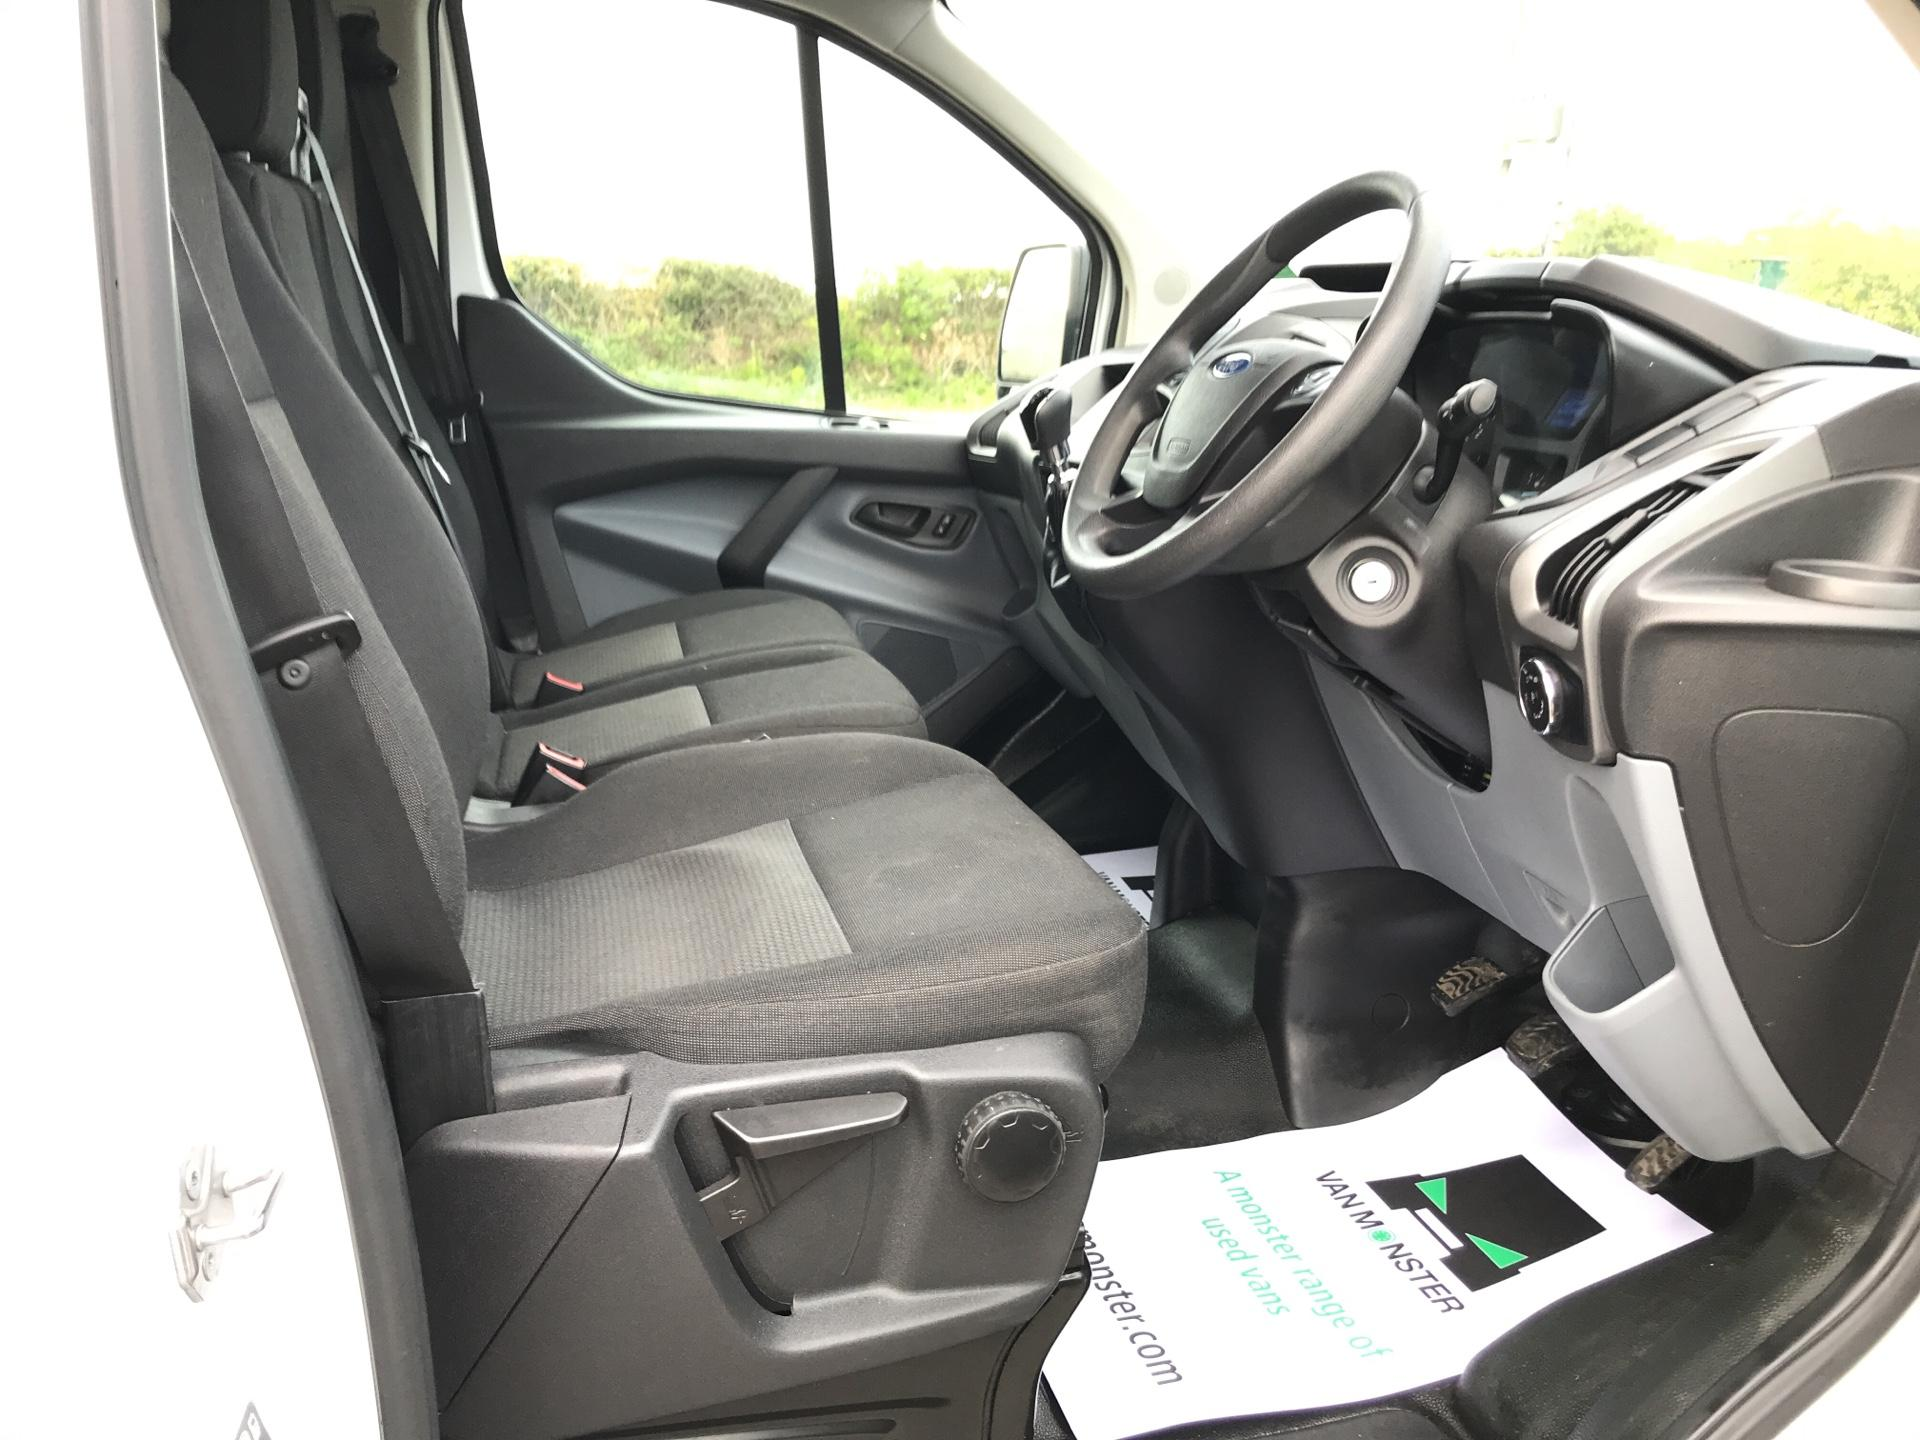 2016 Ford Transit Custom 290 L1 DIESEL FWD 2.2 TDCI 100PS LOW ROOF VAN EURO 5 (FA16UOE) Thumbnail 9